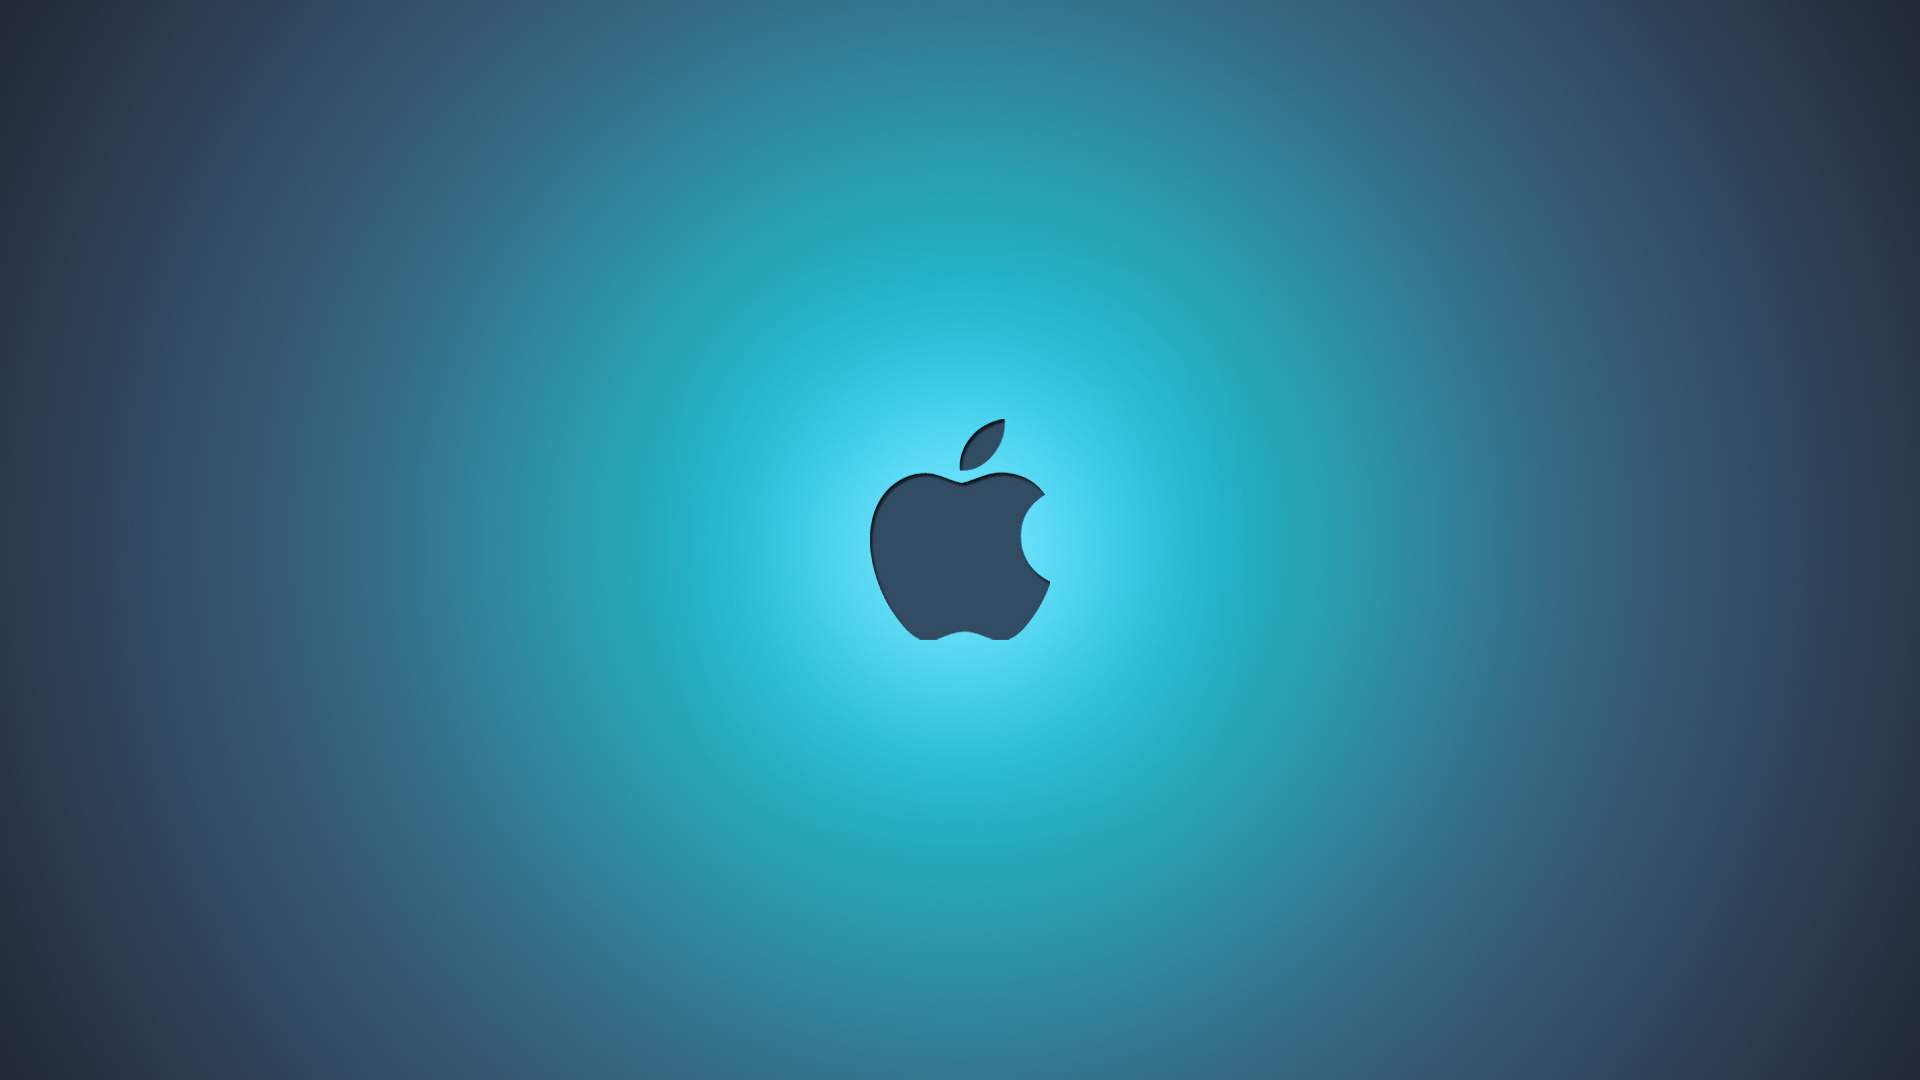 78 Best images about Apple HD Wallpaper on Pinterest | Logos, Best